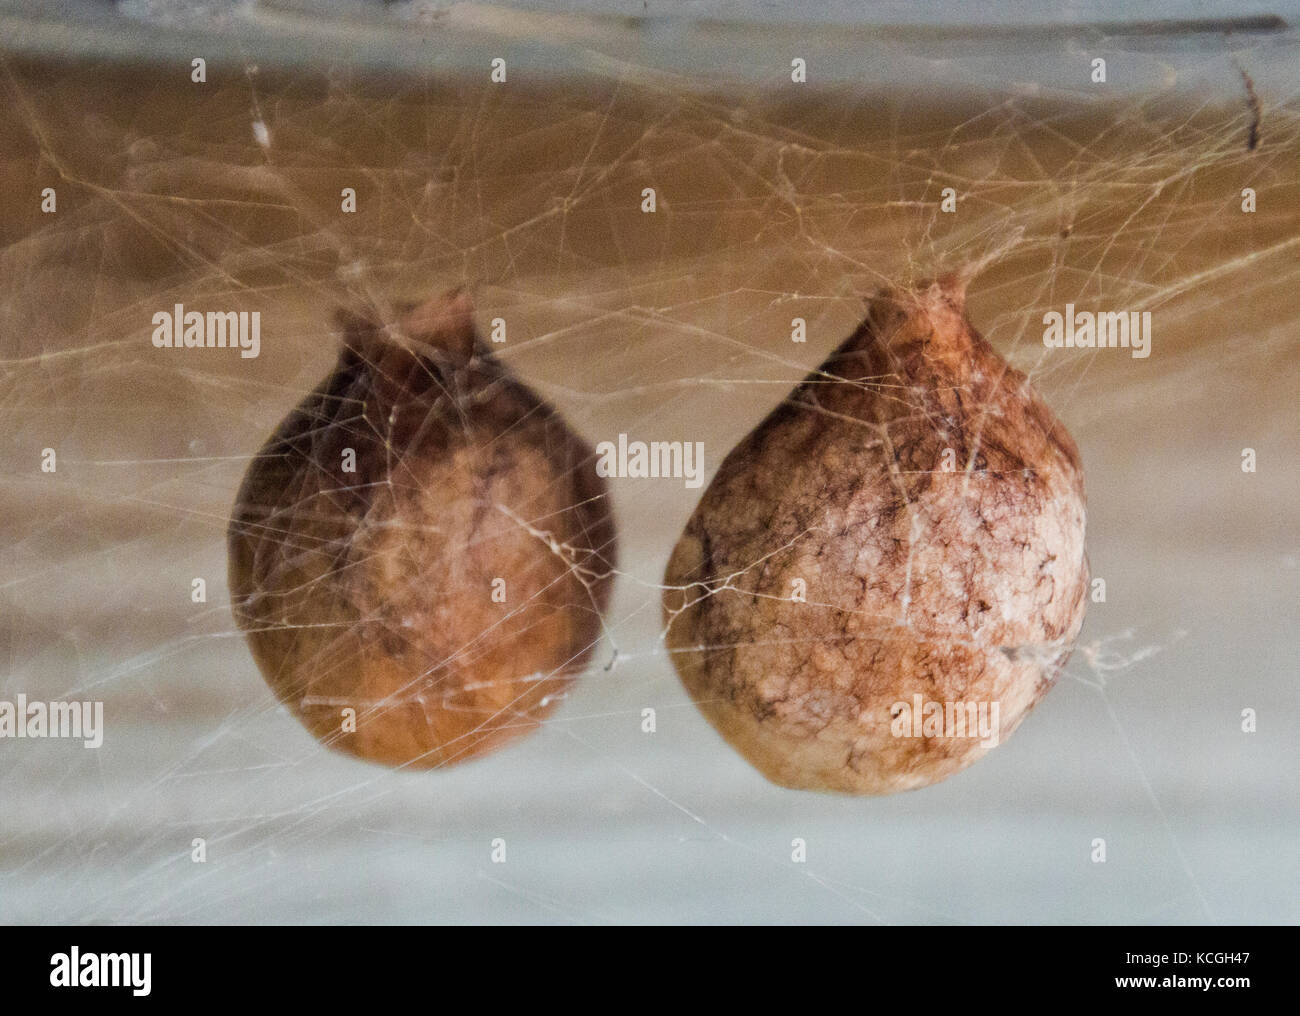 Two strange spider eggs suspended in webs. - Stock Image